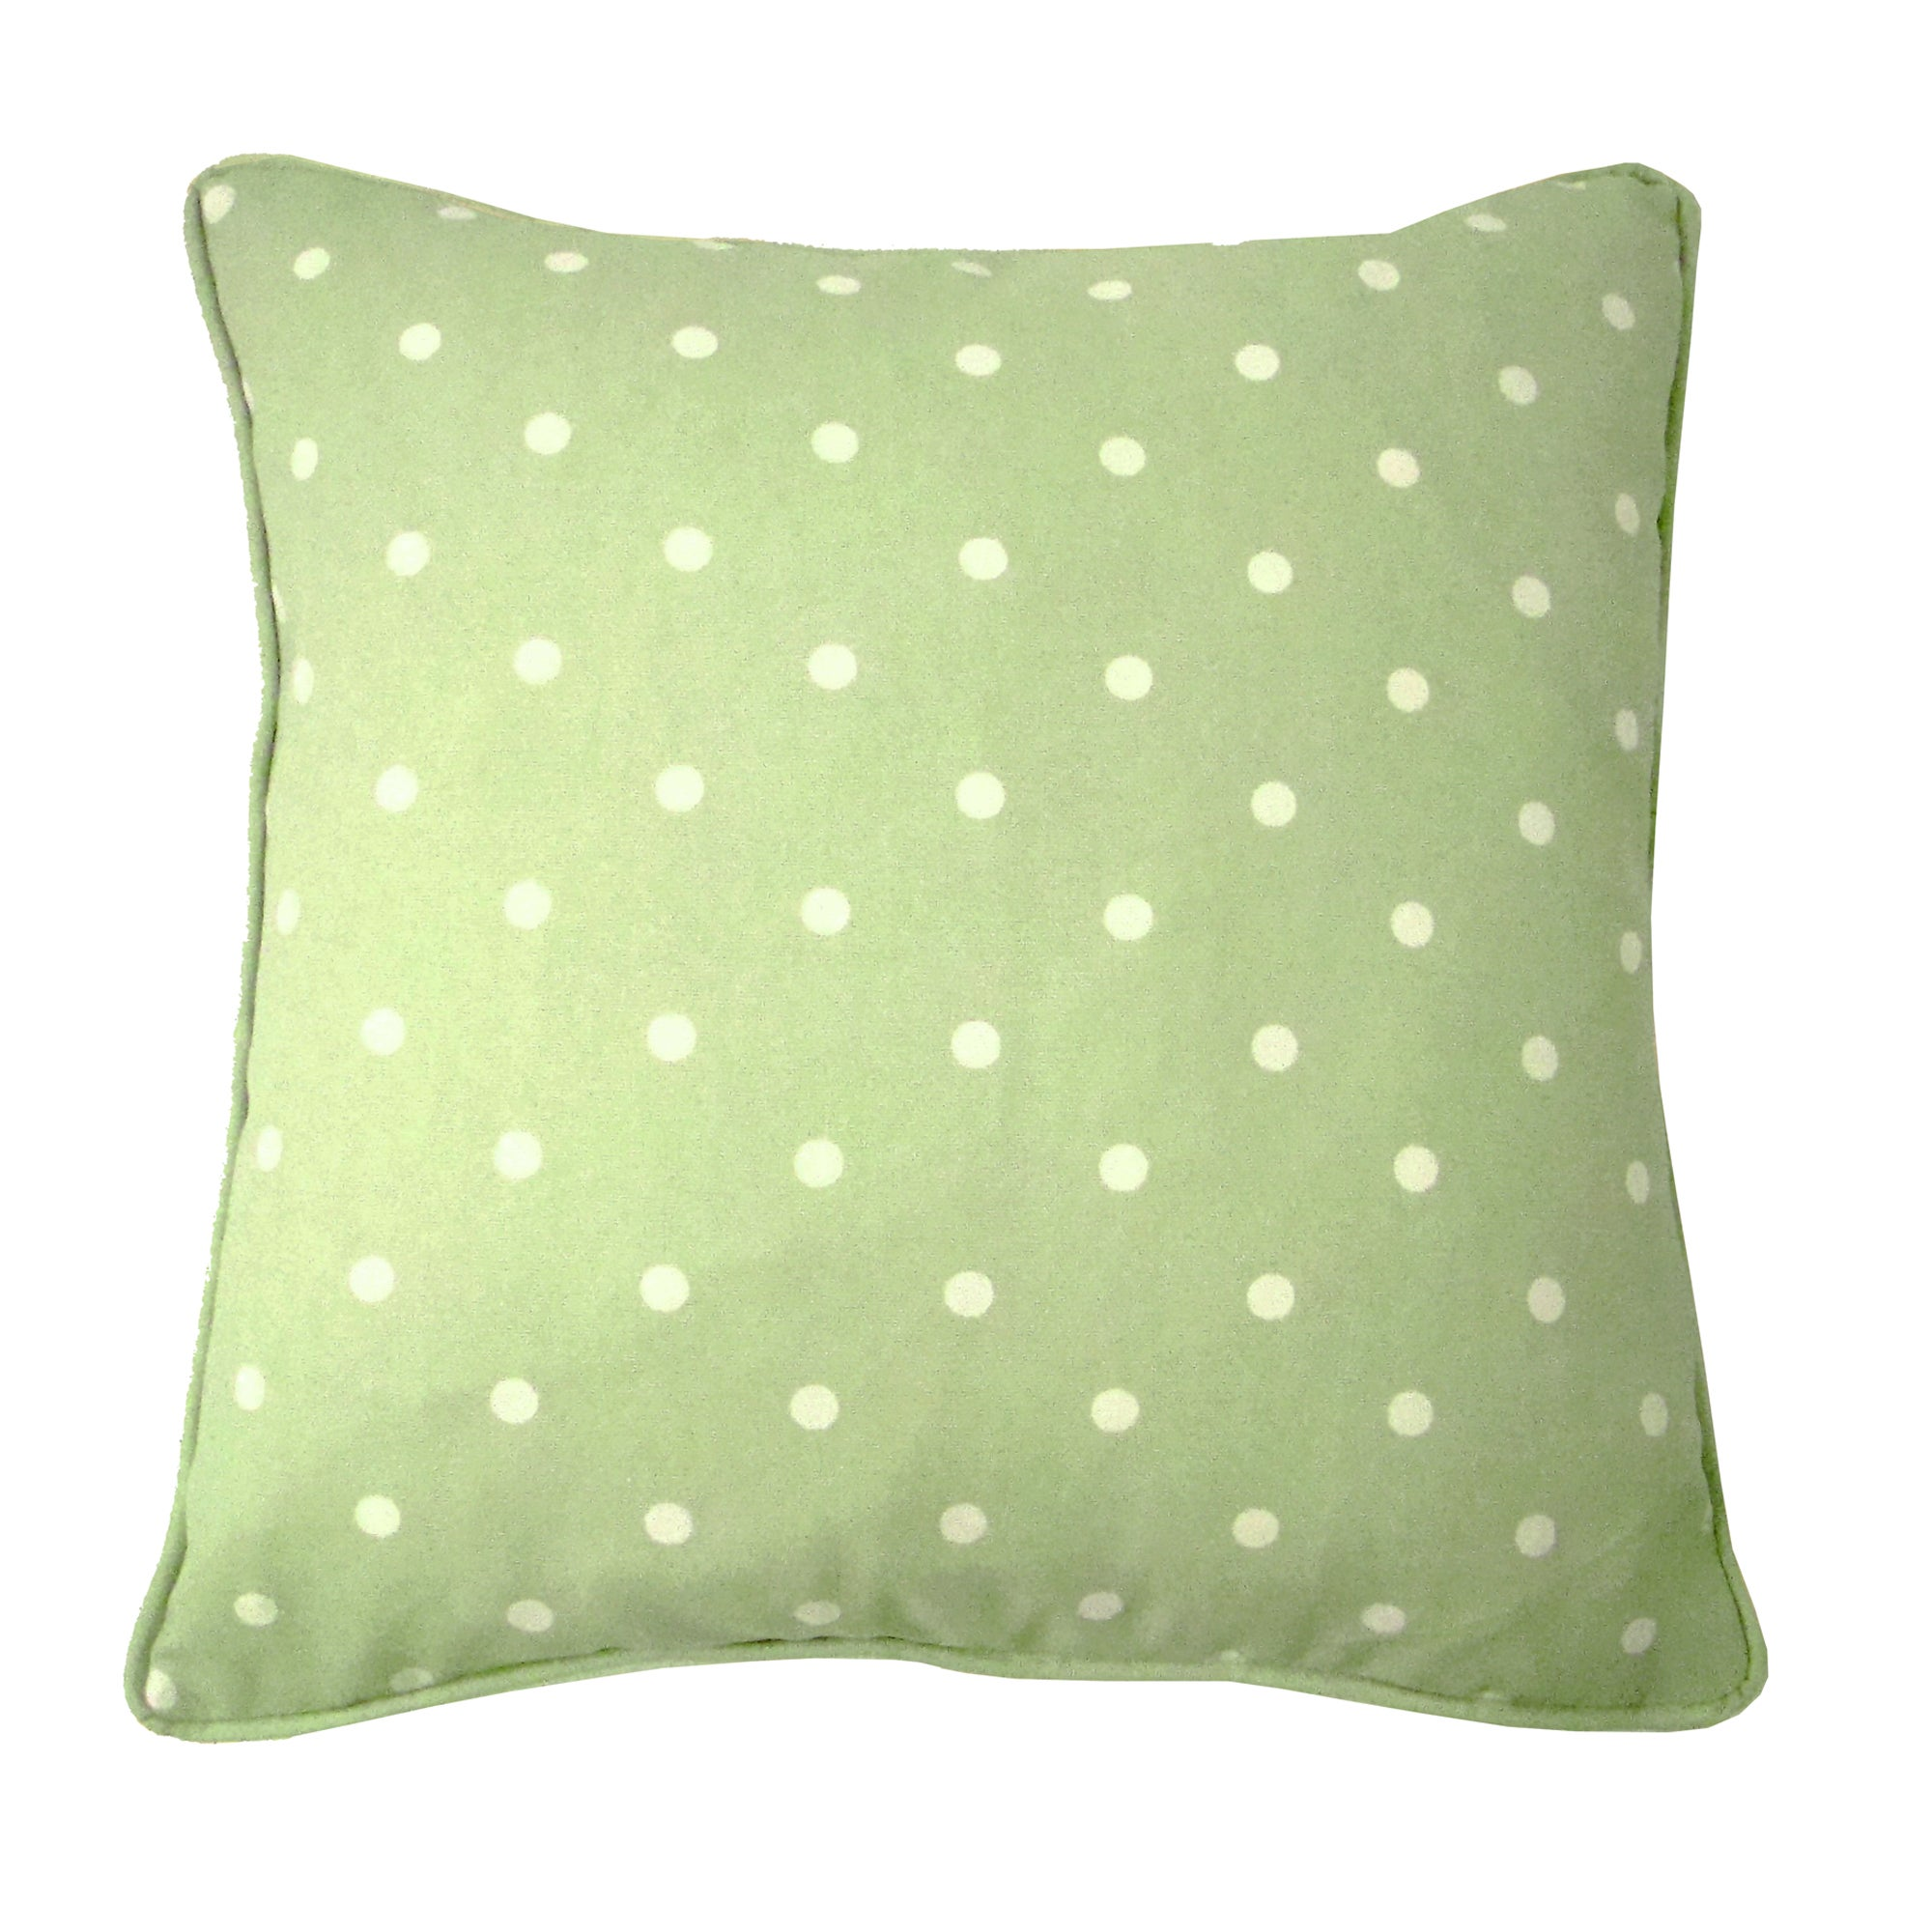 Dotty Cushion Cover